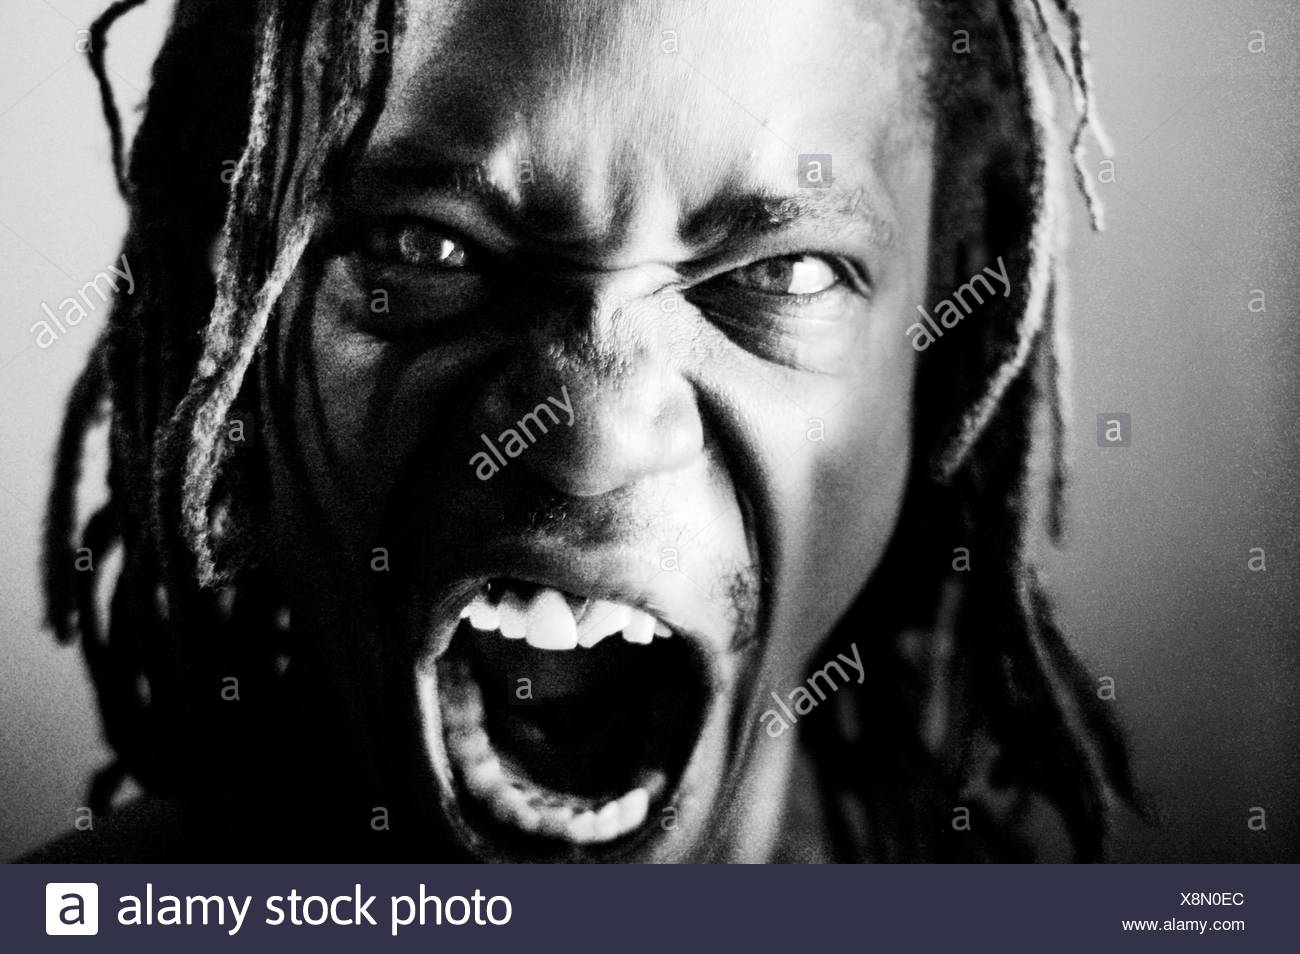 Close-Up Portrait Of Angry Man - Stock Image